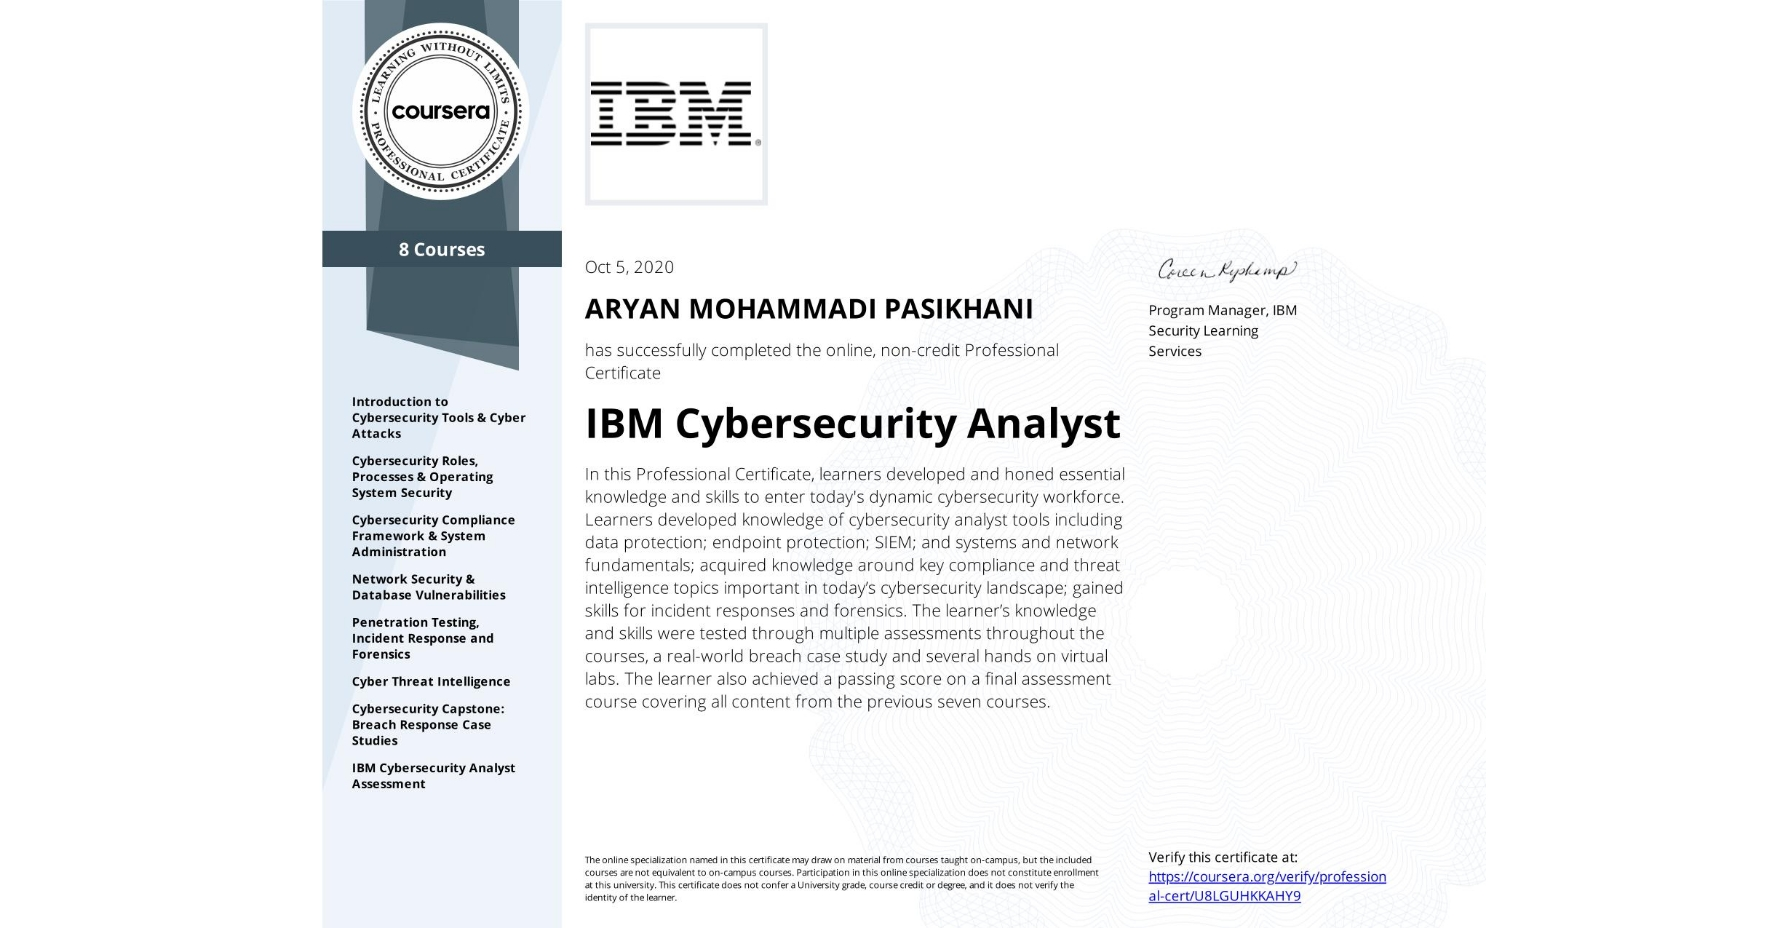 View certificate for ARYAN MOHAMMADI PASIKHANI, IBM Cybersecurity Analyst, offered through Coursera. In this Professional Certificate, learners developed and honed essential knowledge and skills to enter today's dynamic cybersecurity workforce.  Learners developed knowledge of cybersecurity analyst tools including data protection; endpoint protection; SIEM; and systems and network fundamentals; acquired knowledge around key compliance and threat intelligence topics important in today's cybersecurity landscape; gained skills for incident responses and forensics.  The learner's knowledge and skills were tested through multiple assessments throughout the courses, a real-world breach case study and several hands on virtual labs.  The learner also achieved a passing score on a final assessment course covering all content from the previous seven courses.